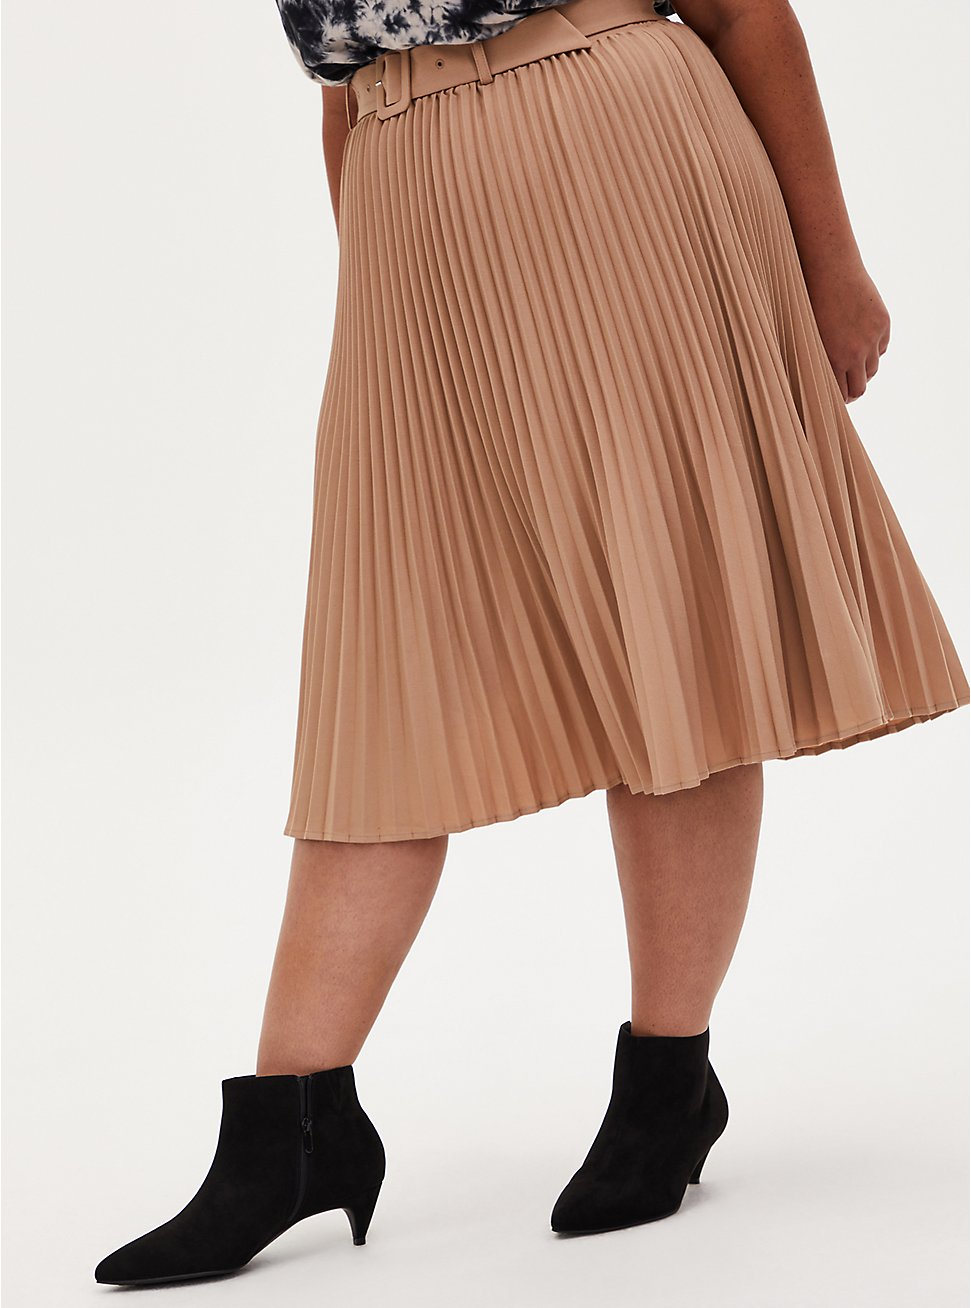 Camel Belted Accordion Pleated Midi Skirt, MACCHIATO BEIGE, hi-res